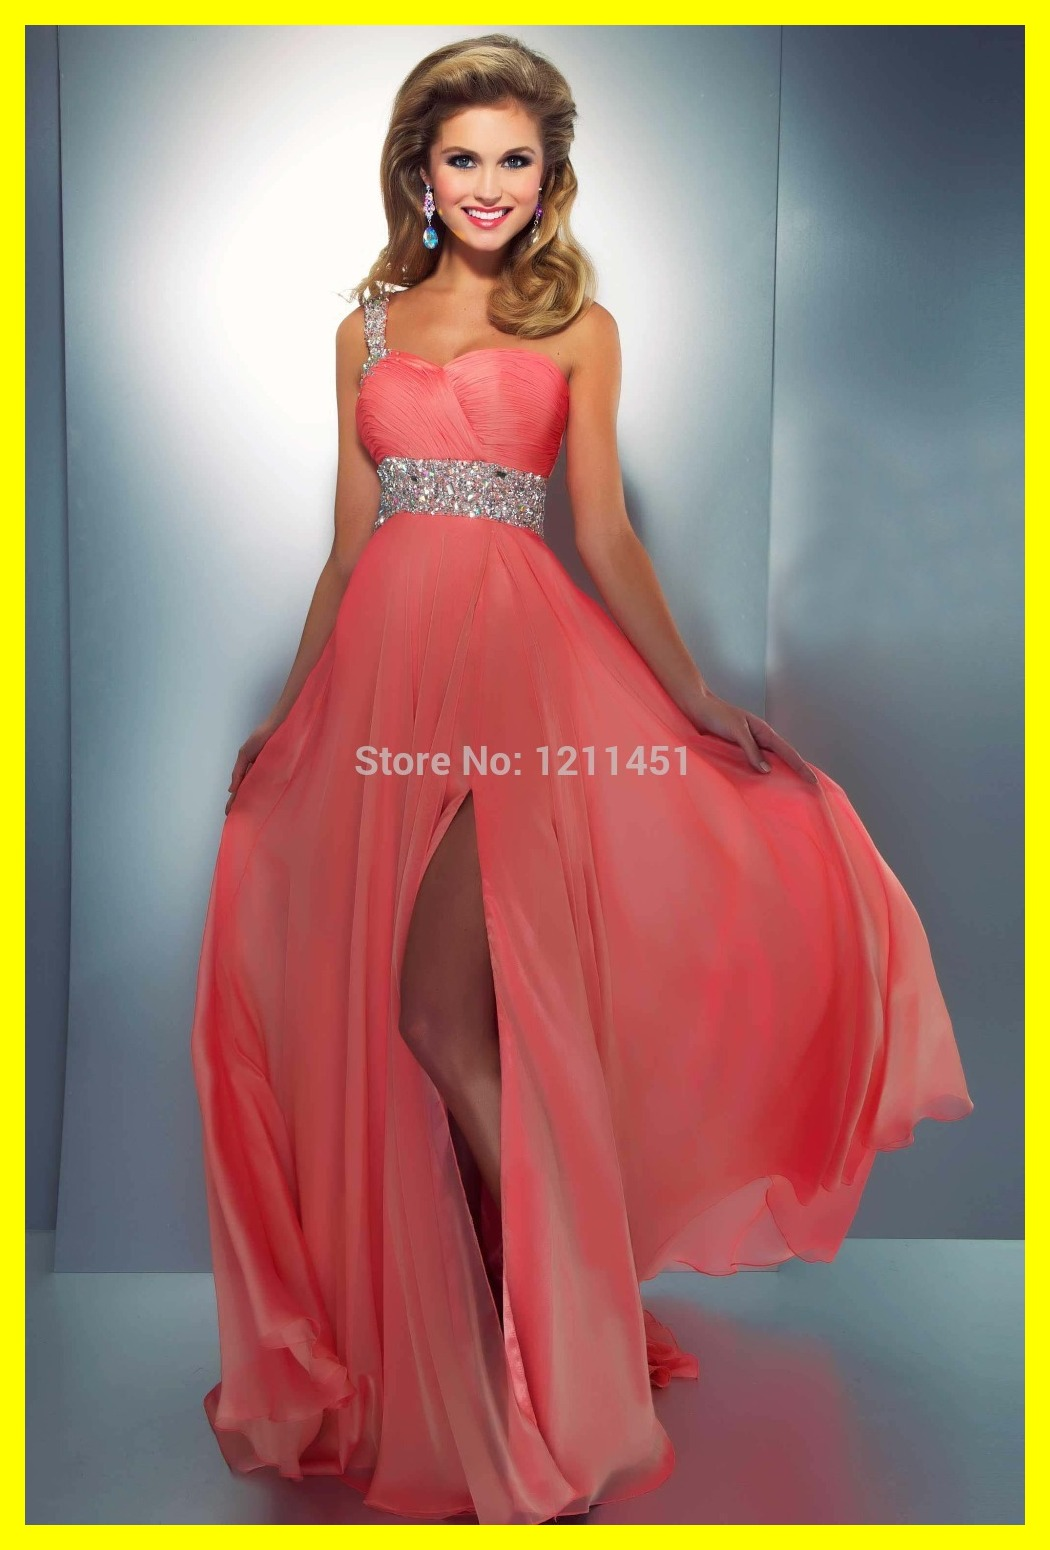 Cool wedding dresses for young bridesmaid dress hire online bridesmaid dress hire online ombrellifo Choice Image